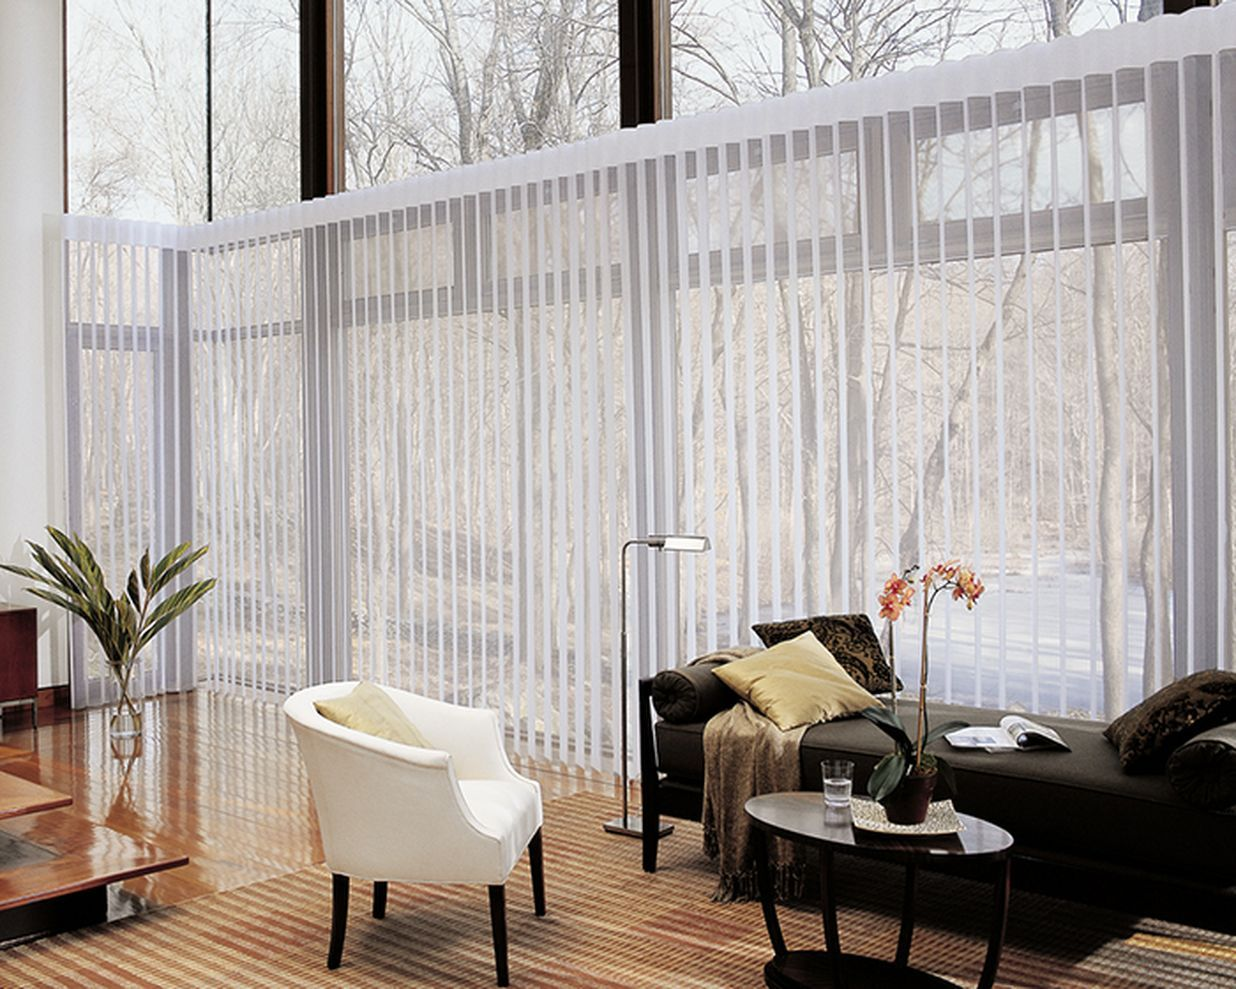 Modern window ideas   modern window treatment ideas for privacy and style  modern